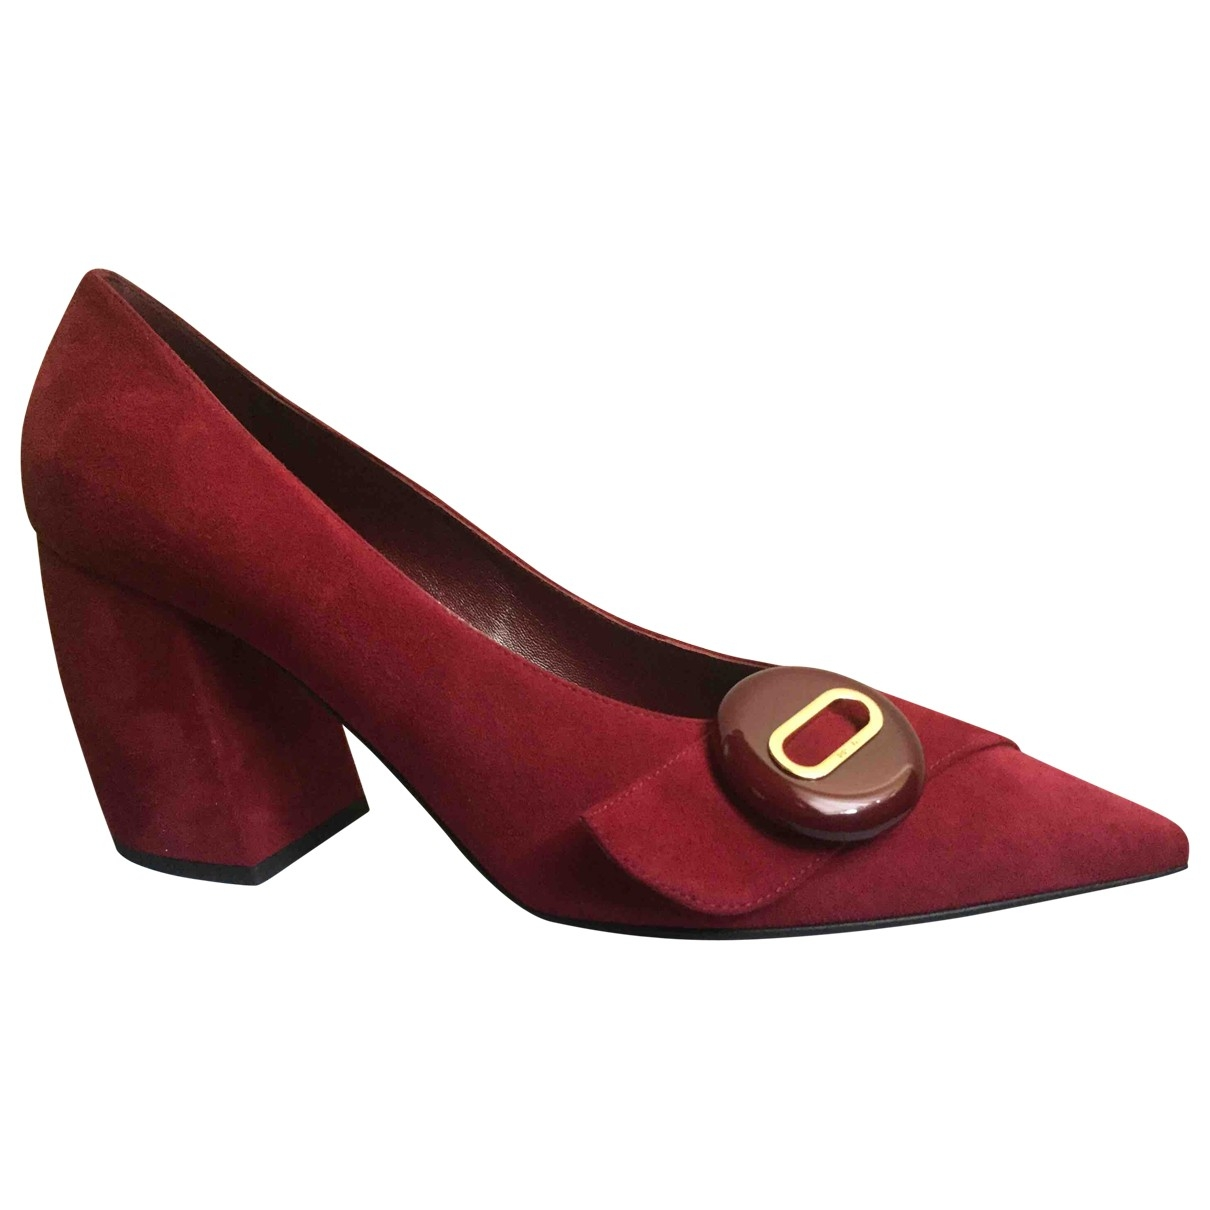 Prada \N Red Suede Heels for Women 40 EU